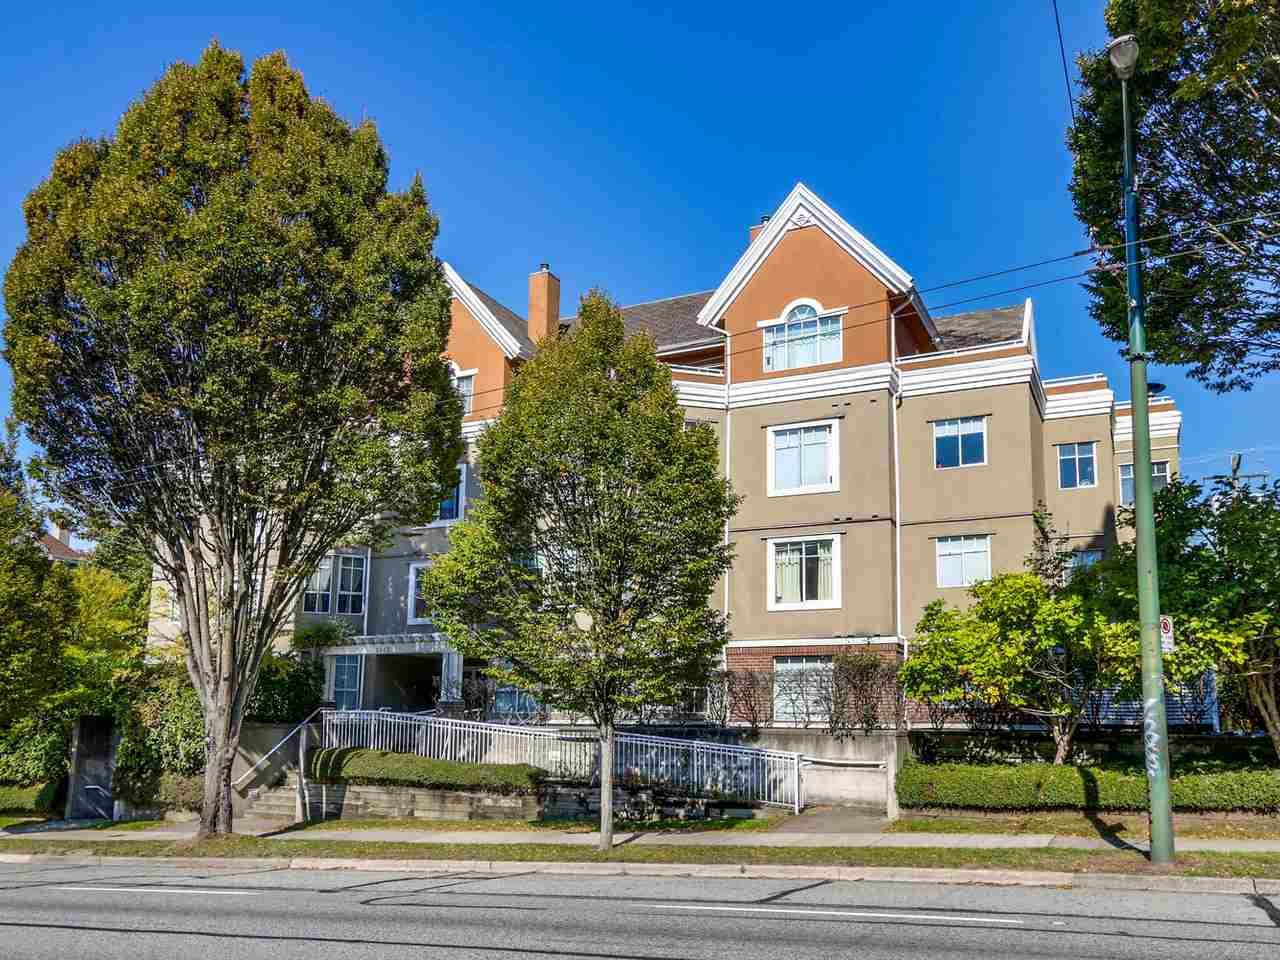 Main Photo: 203 2505 E BROADWAY in Vancouver: Renfrew VE Condo for sale (Vancouver East)  : MLS® # R2004913